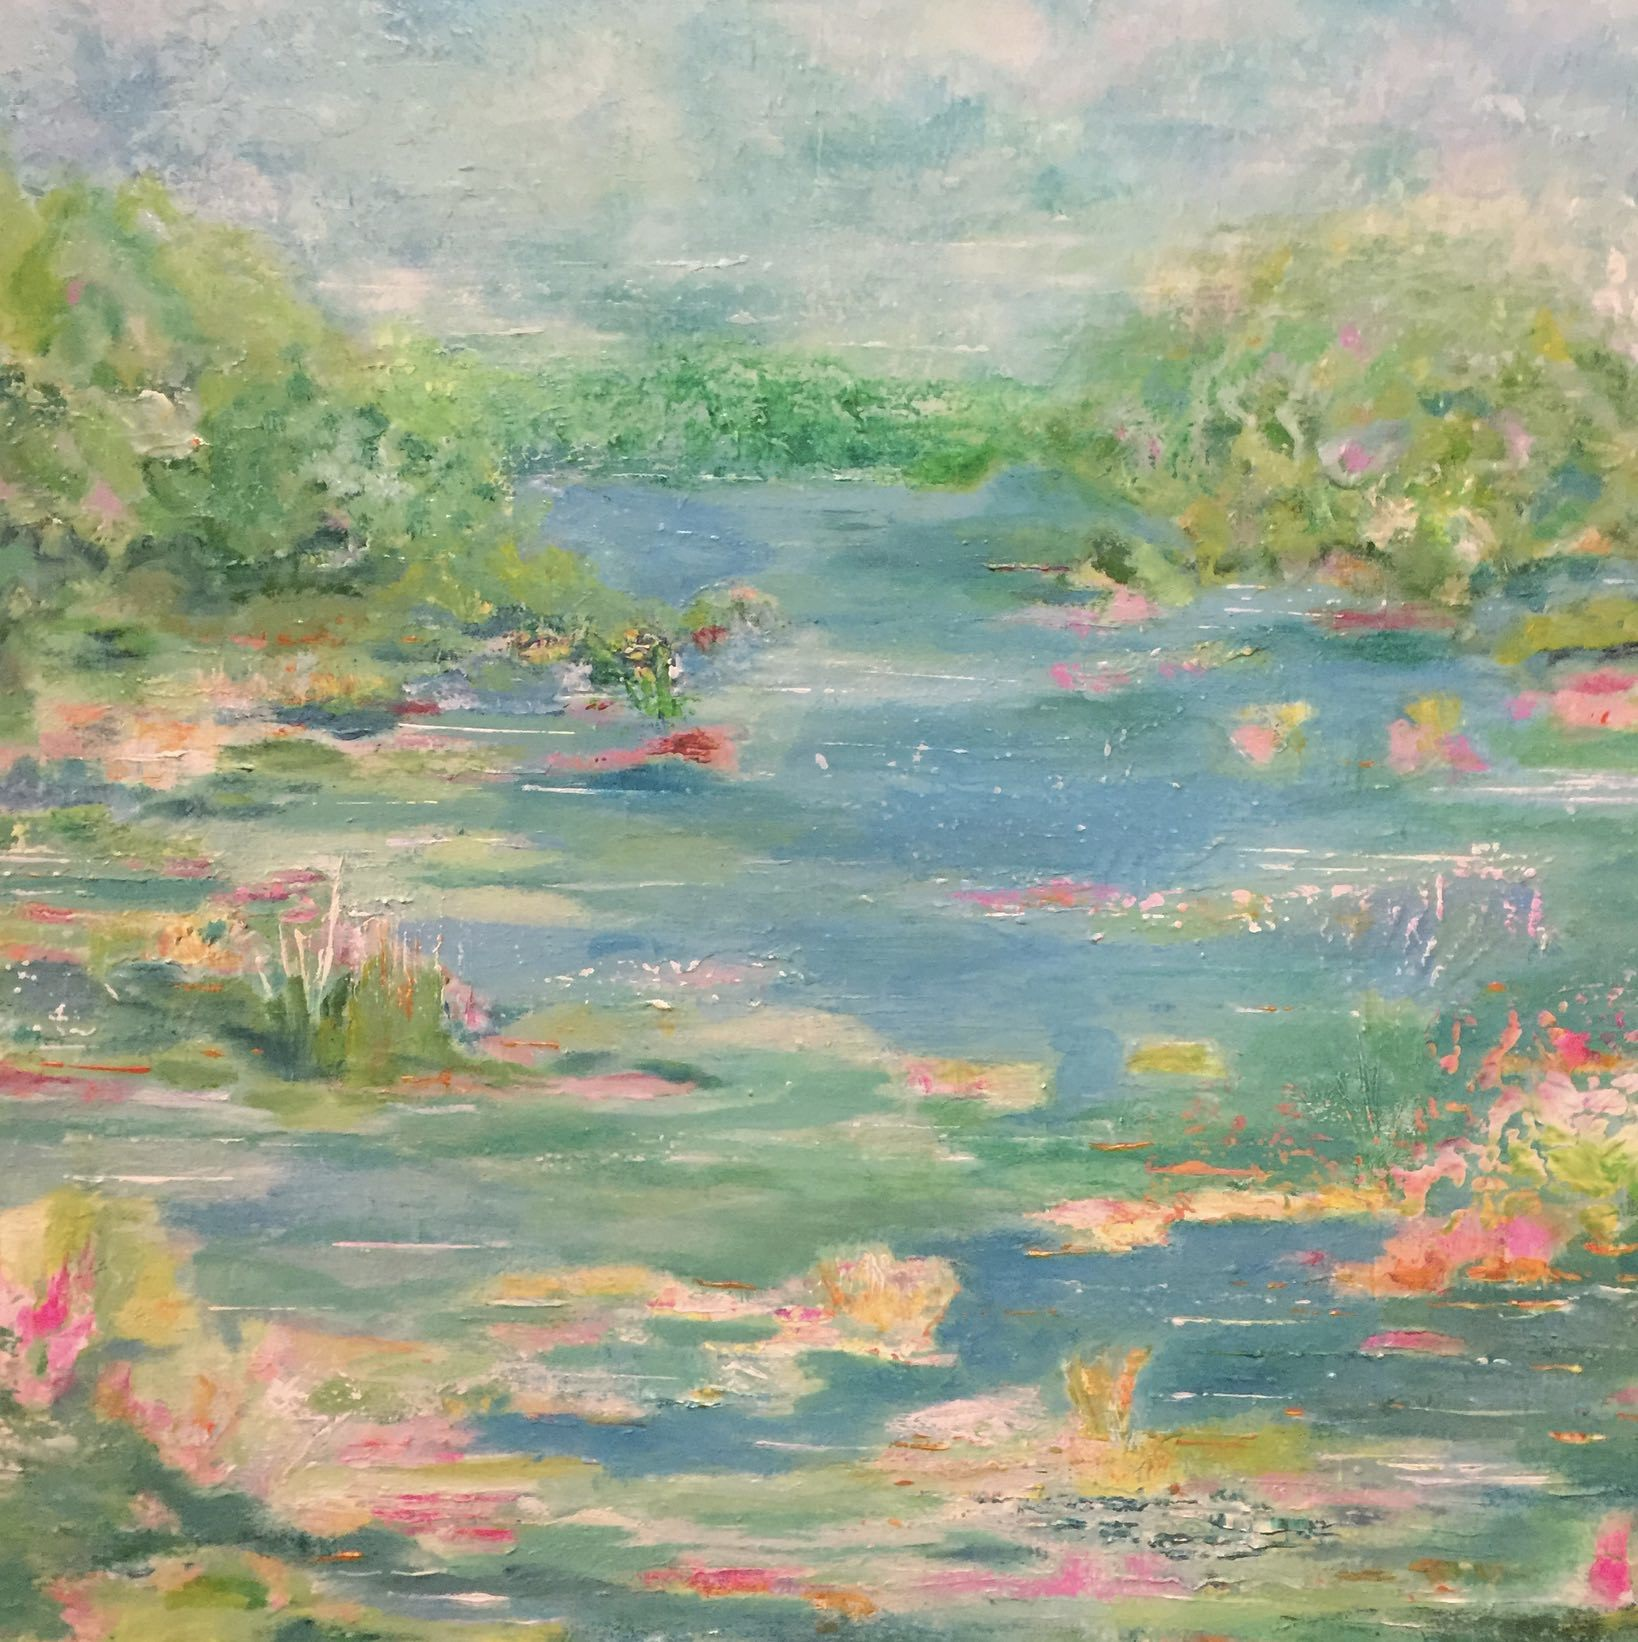 <span class=&#34;link fancybox-details-link&#34;><a href=&#34;/artists/38-linda-franklin/works/2650-linda-franklin-swallows-and-amazons/&#34;>View Detail Page</a></span><div class=&#34;artist&#34;><strong>Linda Franklin</strong></div> <div class=&#34;title&#34;><em>Swallows and Amazons </em></div> <div class=&#34;medium&#34;>Mixed Media on Canvas </div> <div class=&#34;dimensions&#34;>90 x 90 cm </div><div class=&#34;price&#34;>£1,950.00</div><div class=&#34;copyright_line&#34;>Copyright The Artist</div>